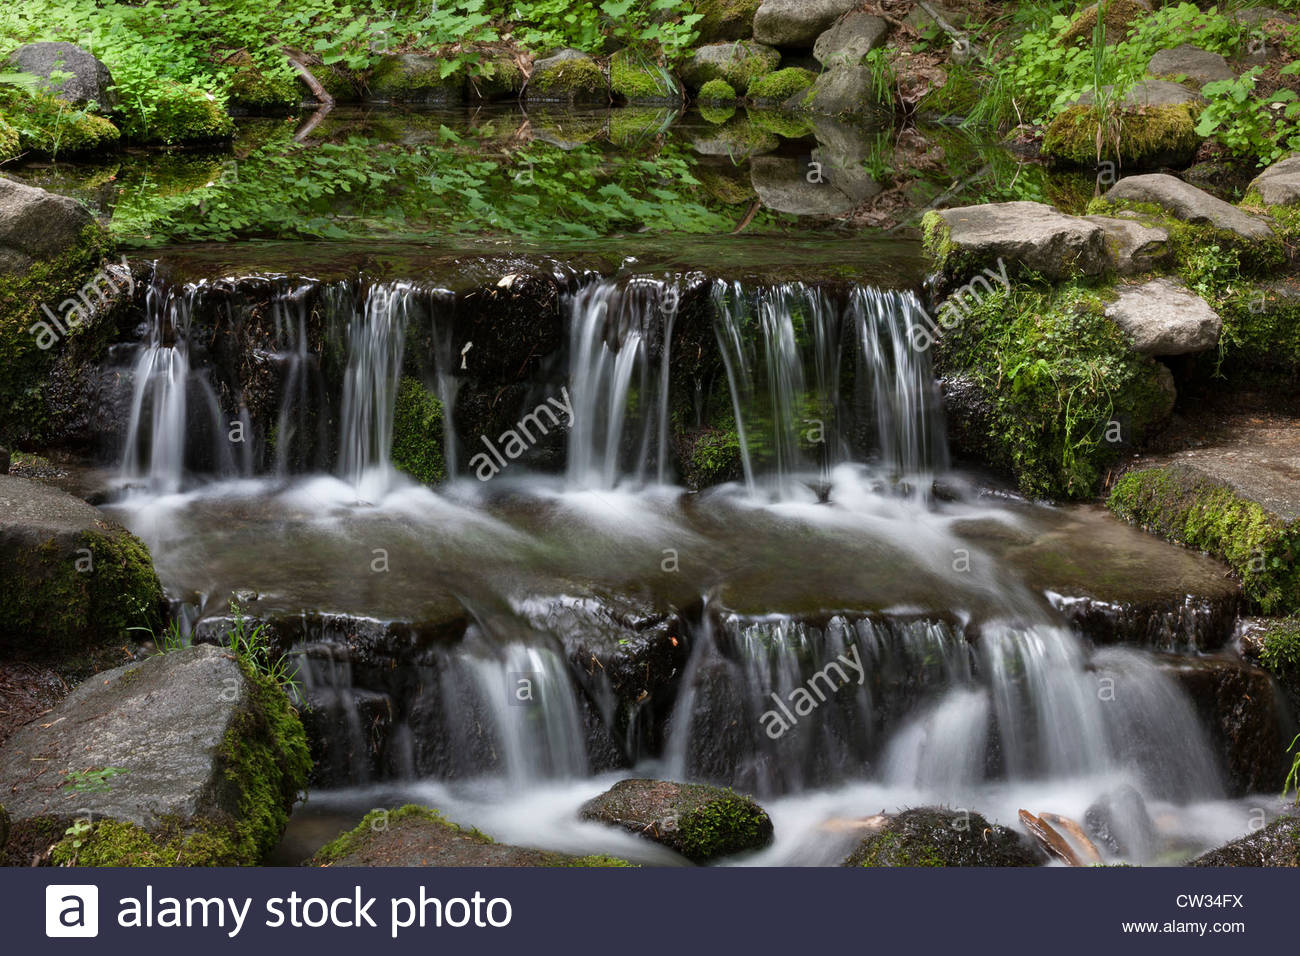 Water cascades from Fern Spring, a natural spring in the main valley of Yosemite National Park, California. Stock Photo